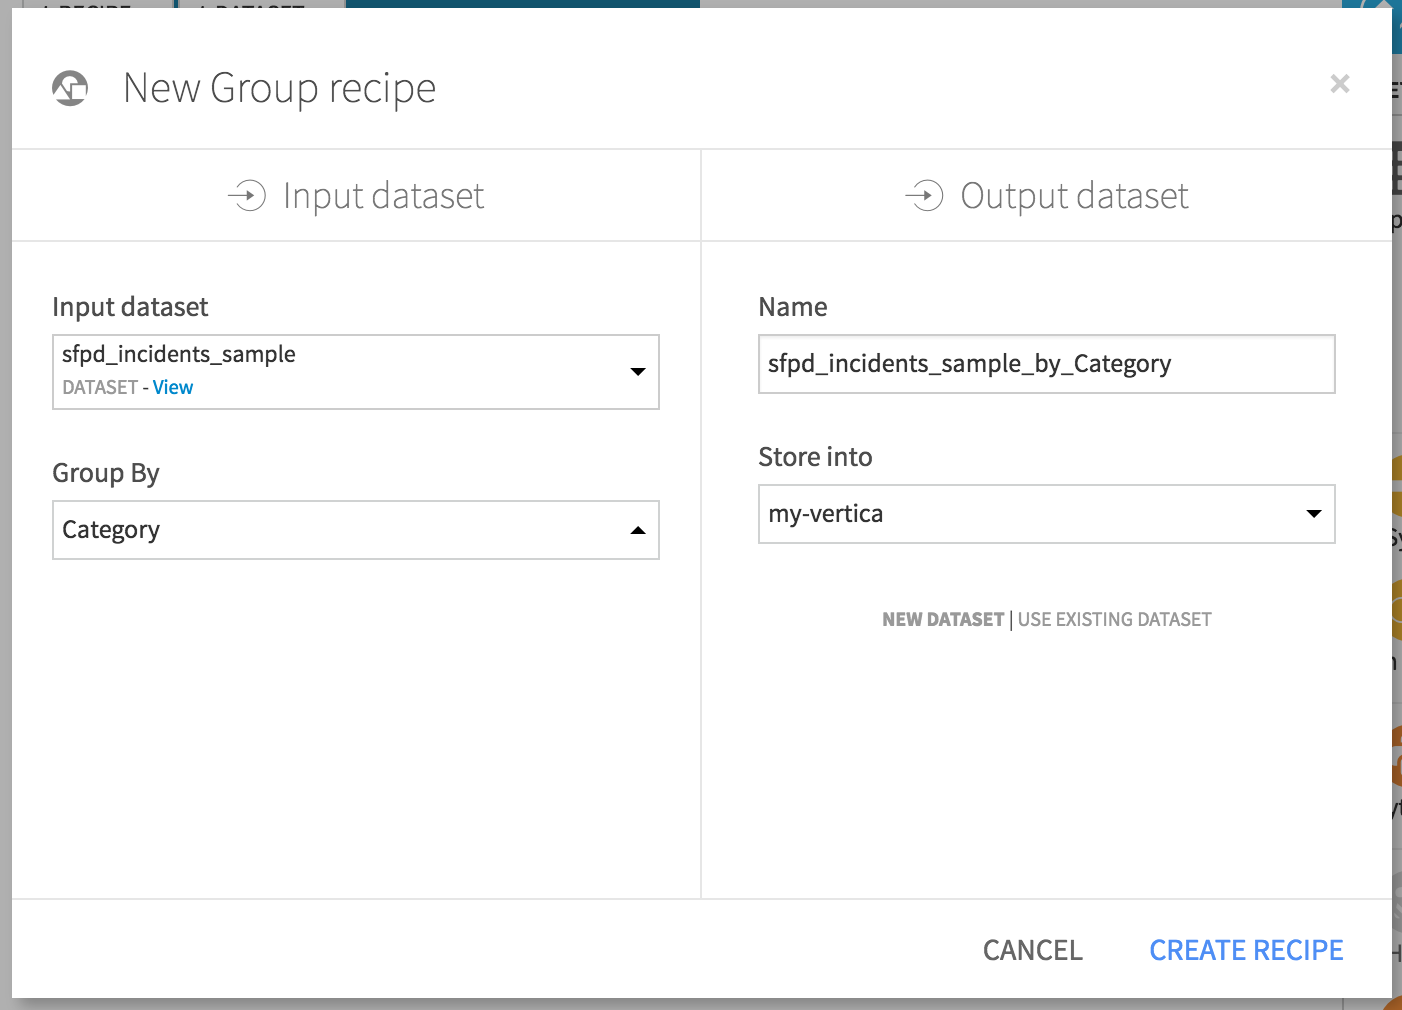 Setting input and output datasets for new Group recipe